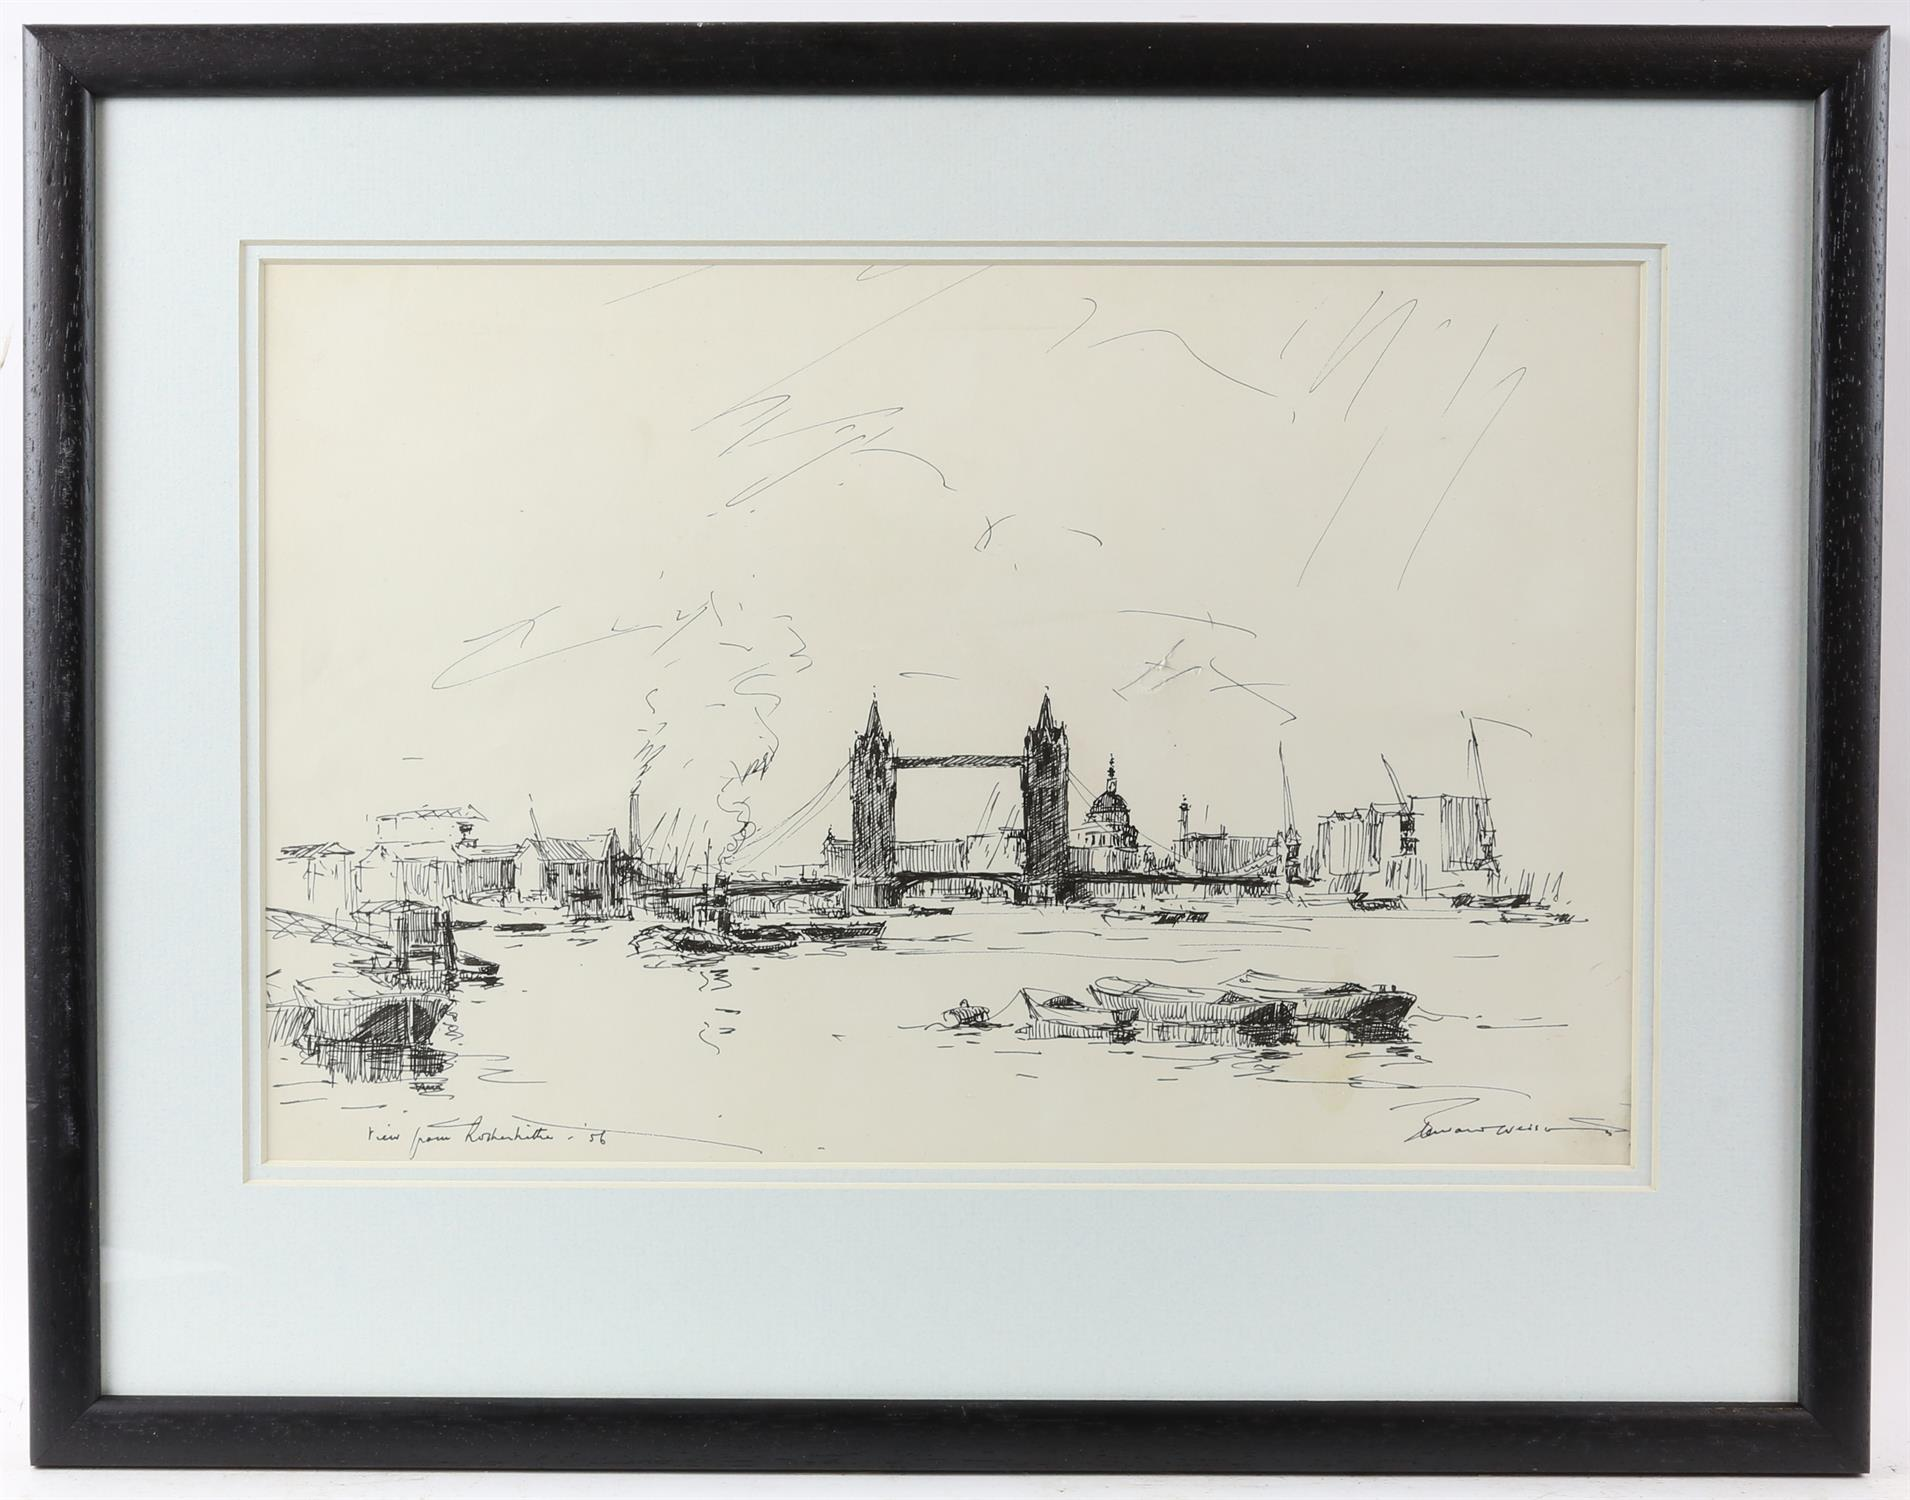 Edward Wesson (British 1910-1983), 'View from Rotherhithe', signed and dated '56, pen and ink, - Image 2 of 4